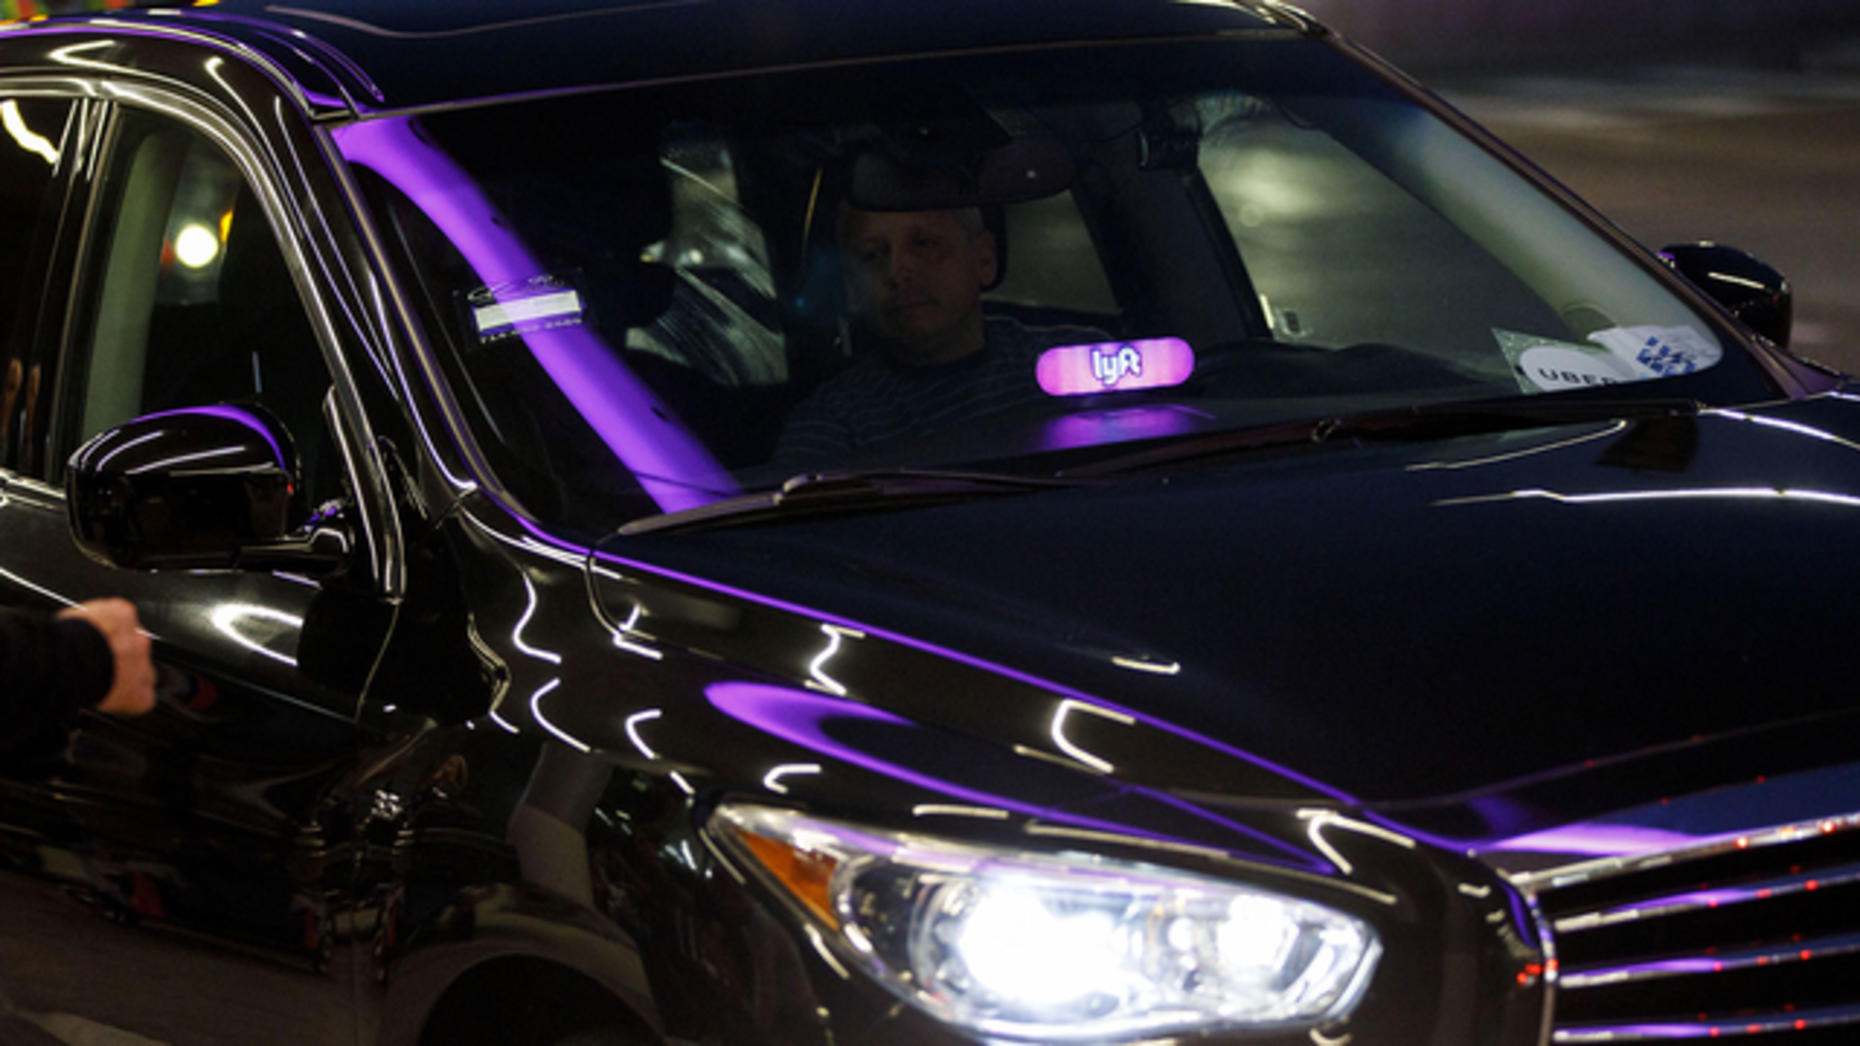 A Lyft car at Los Angeles airport. Photo by Bloomberg.